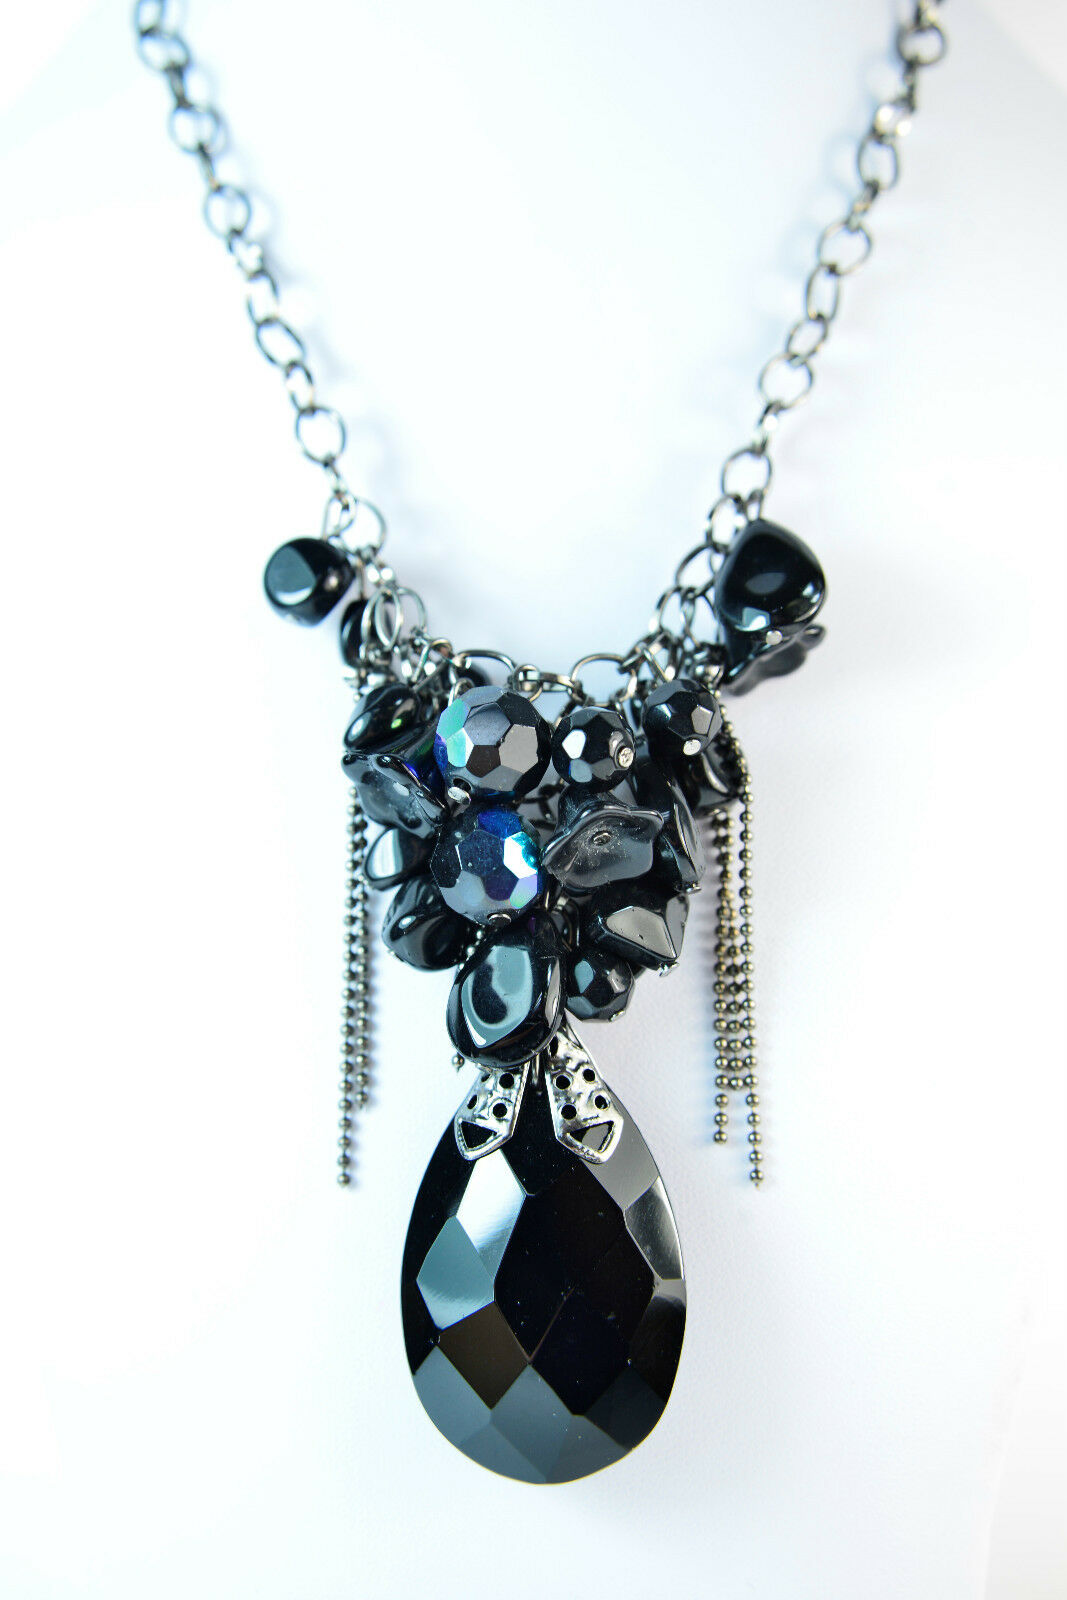 LADIES CHUNKY CHAIN SPIKED DARK STONE SILVER NECKLACE STATEMENT PIECE CL9